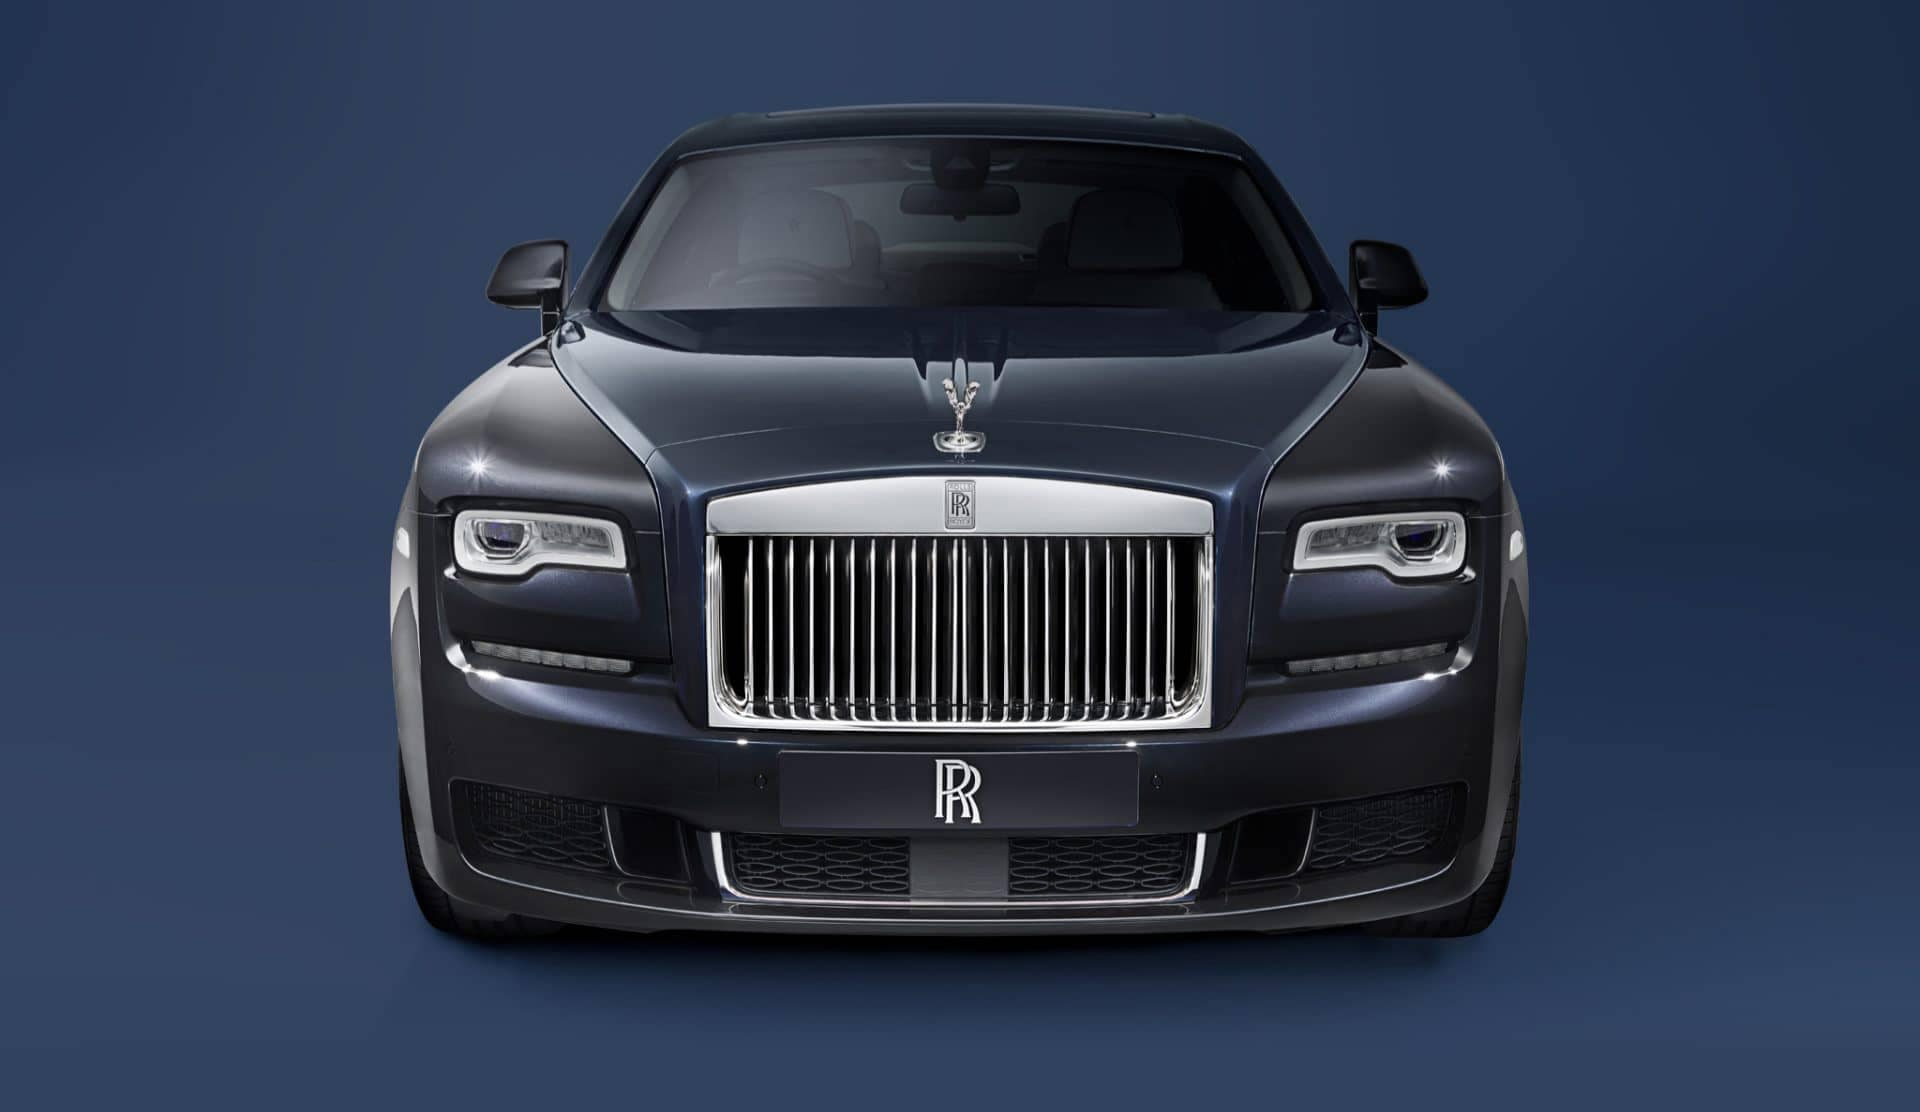 2019 Rolls Royce Ghost